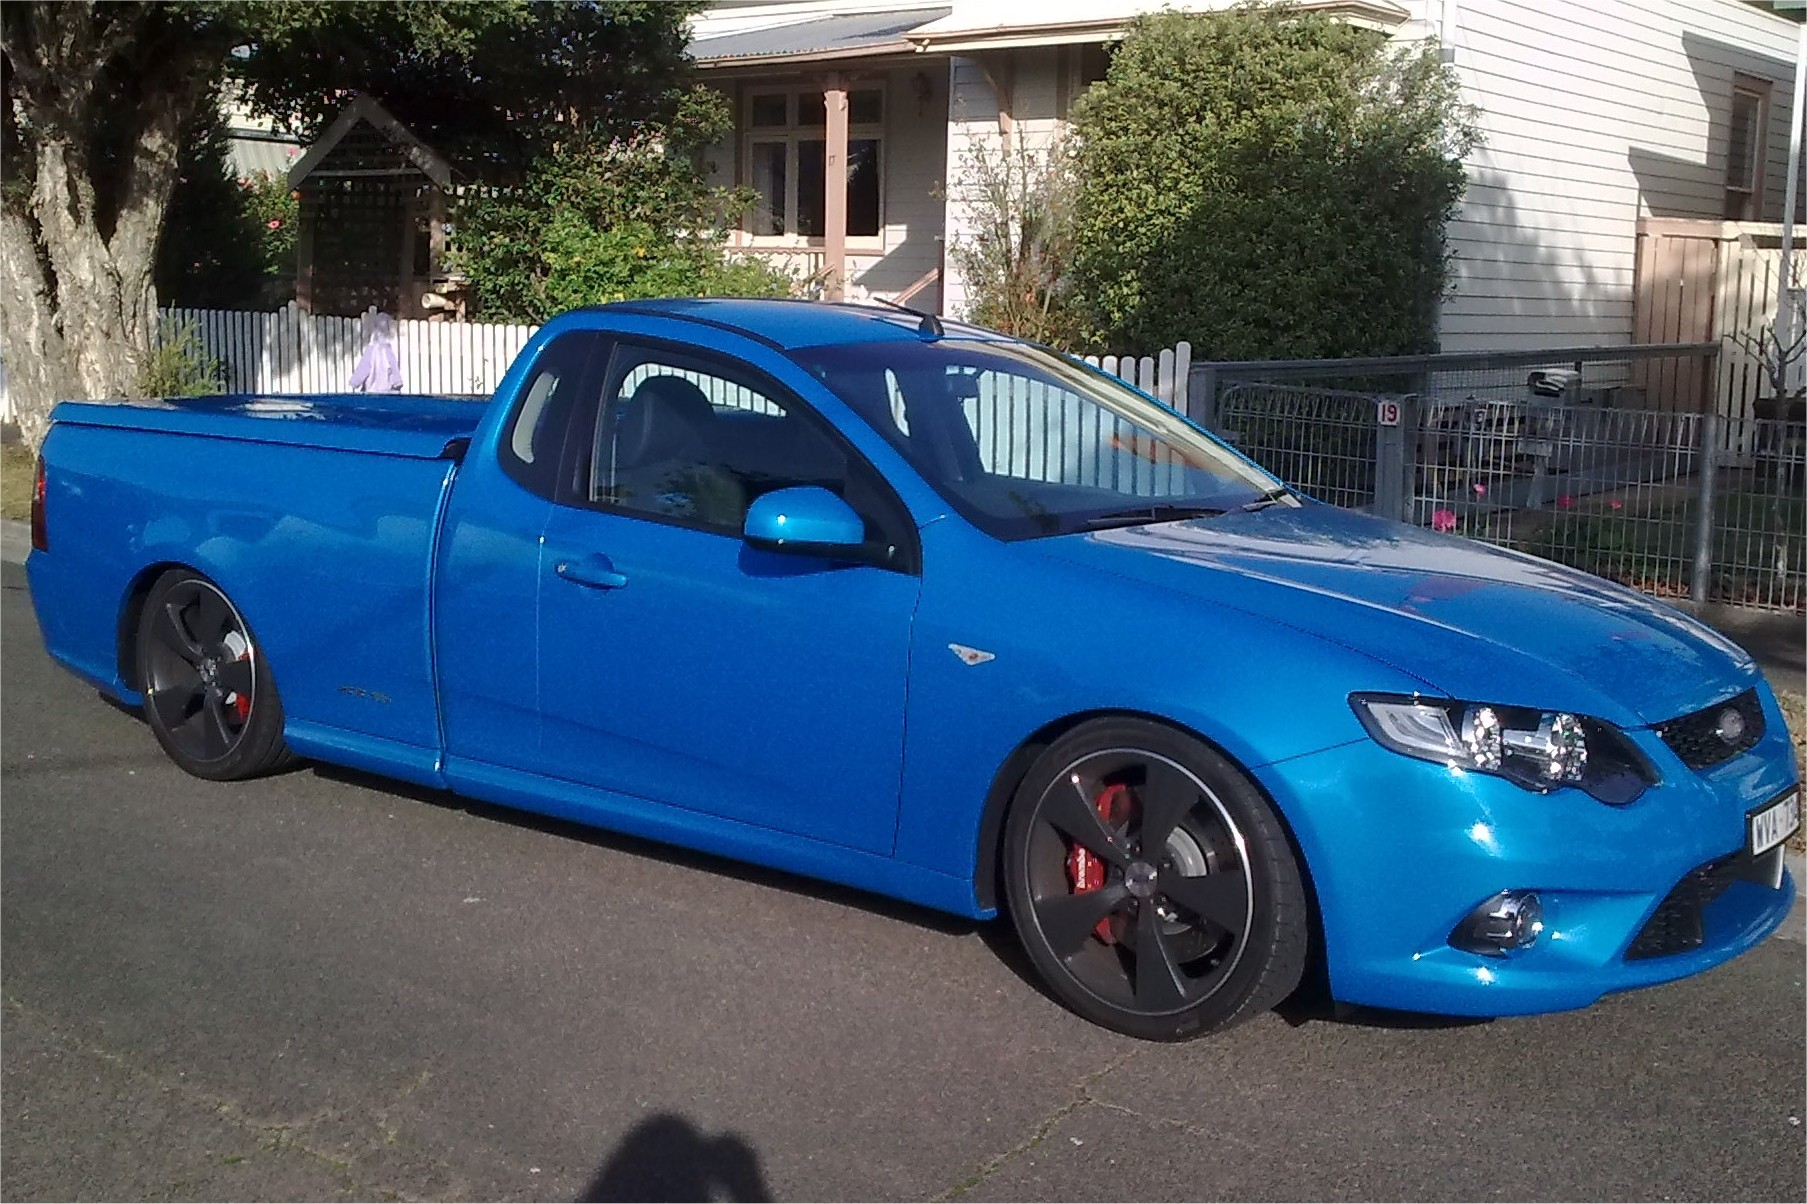 Ford Falcon XR6 Turbo Ute FGpicture 5 reviews news specs buy car